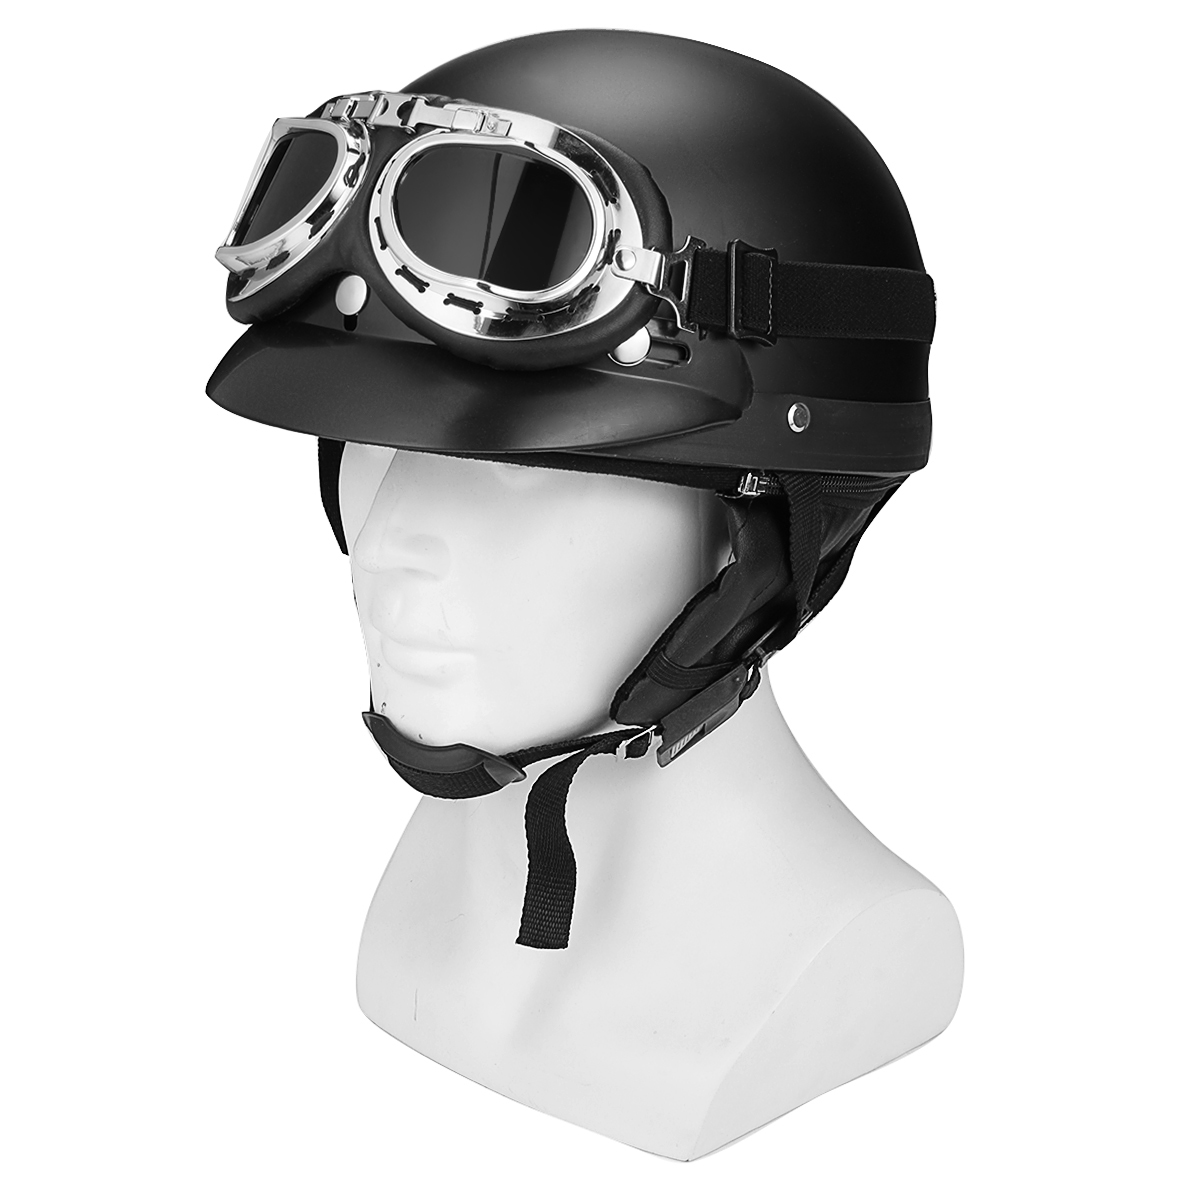 69c72106 Retro Matt Black Motorcycle Half Face Helmet Biker Scooter With Sun ...